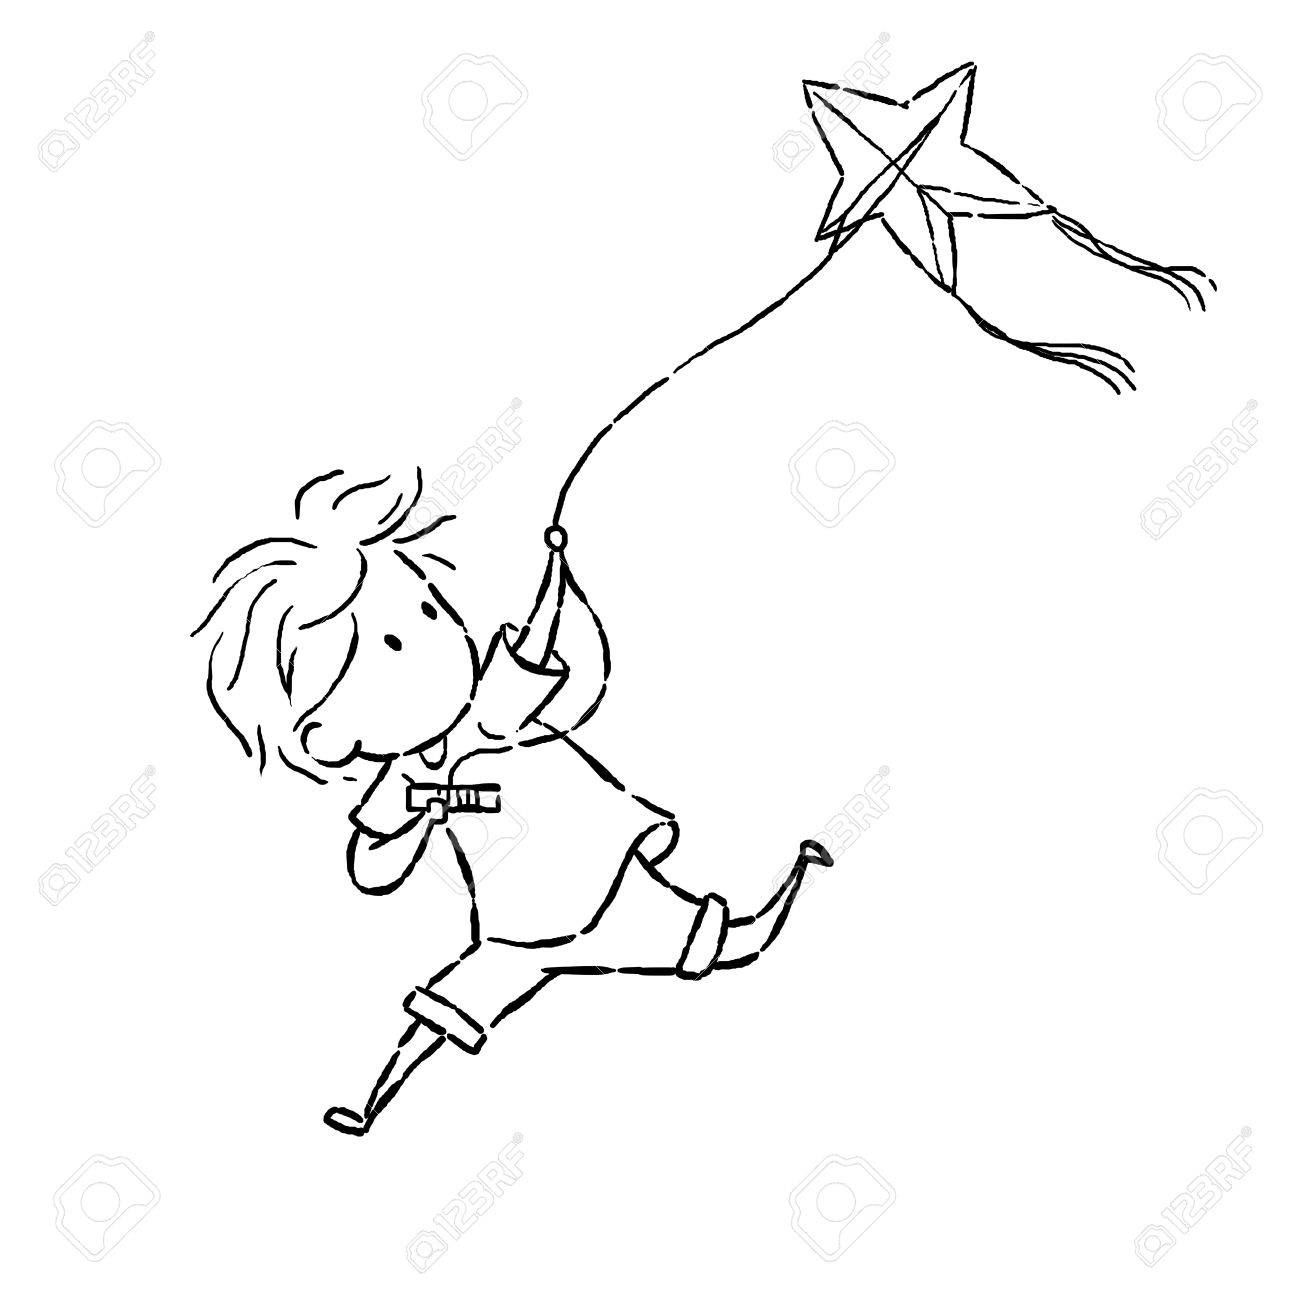 1300x1300 Image Drawing Cartoon Style Of Kid Kiting Stock Photo, Picture